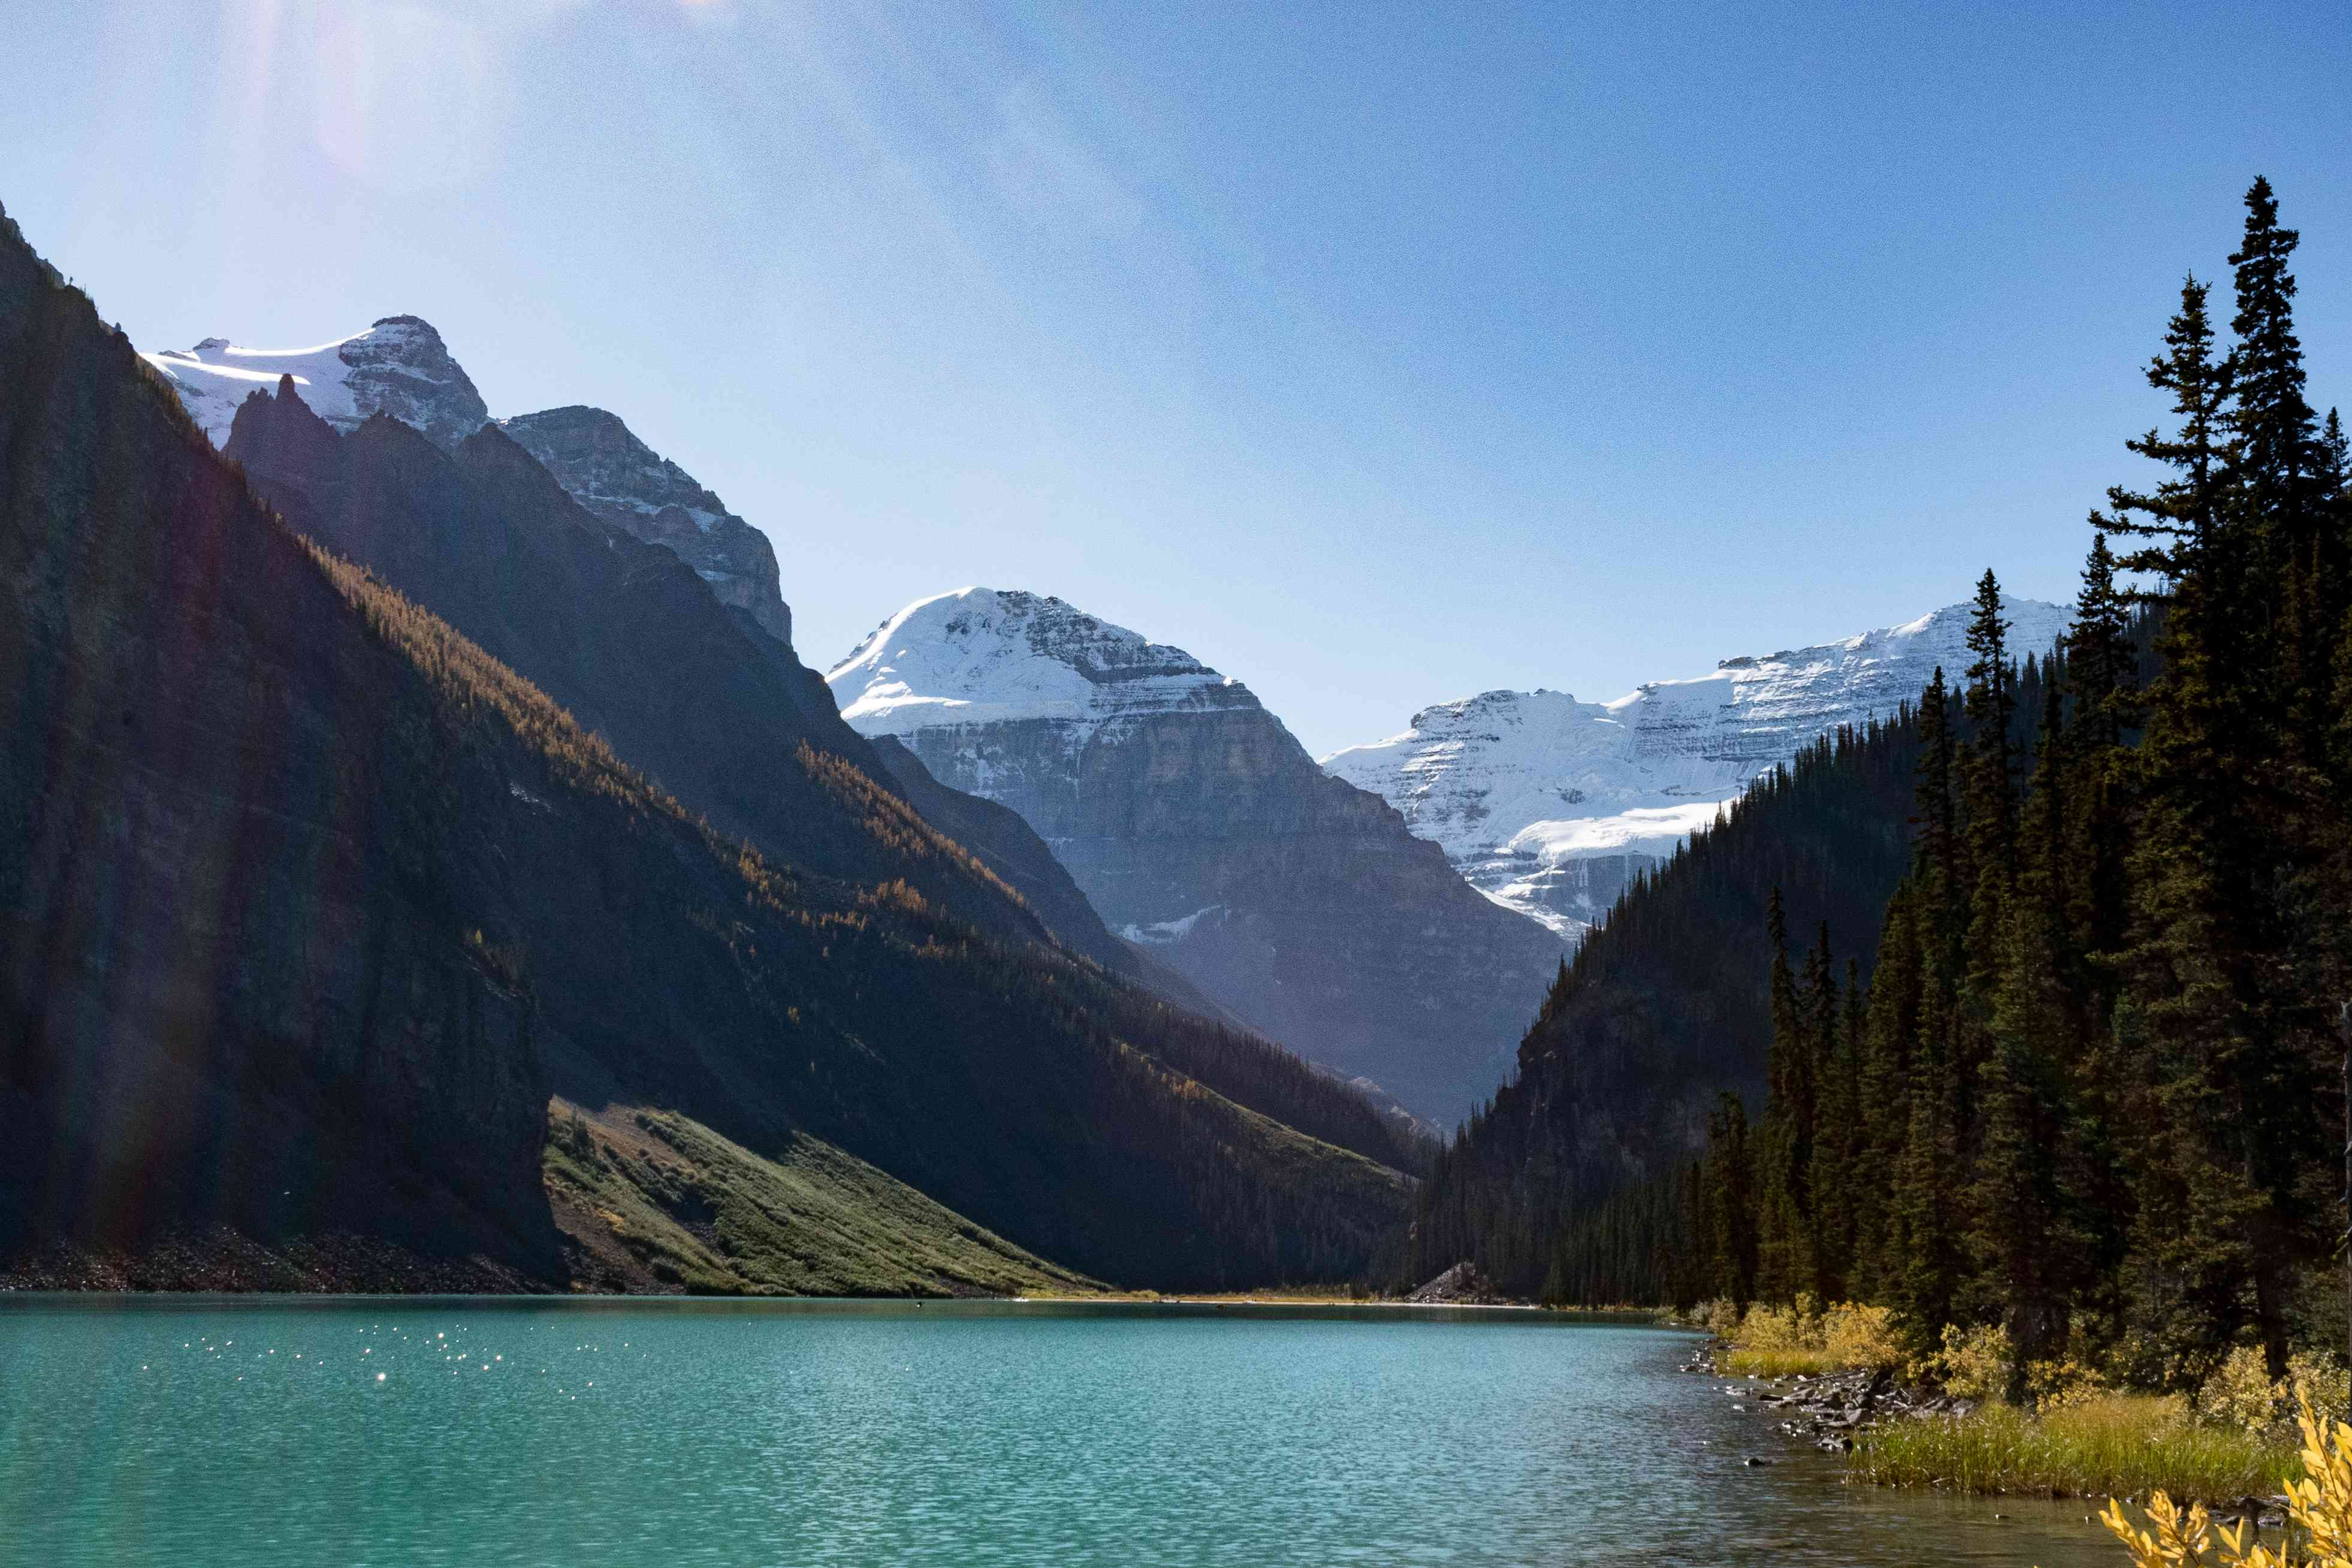 Scenic view of mountains around Lake Louise on a sunny day